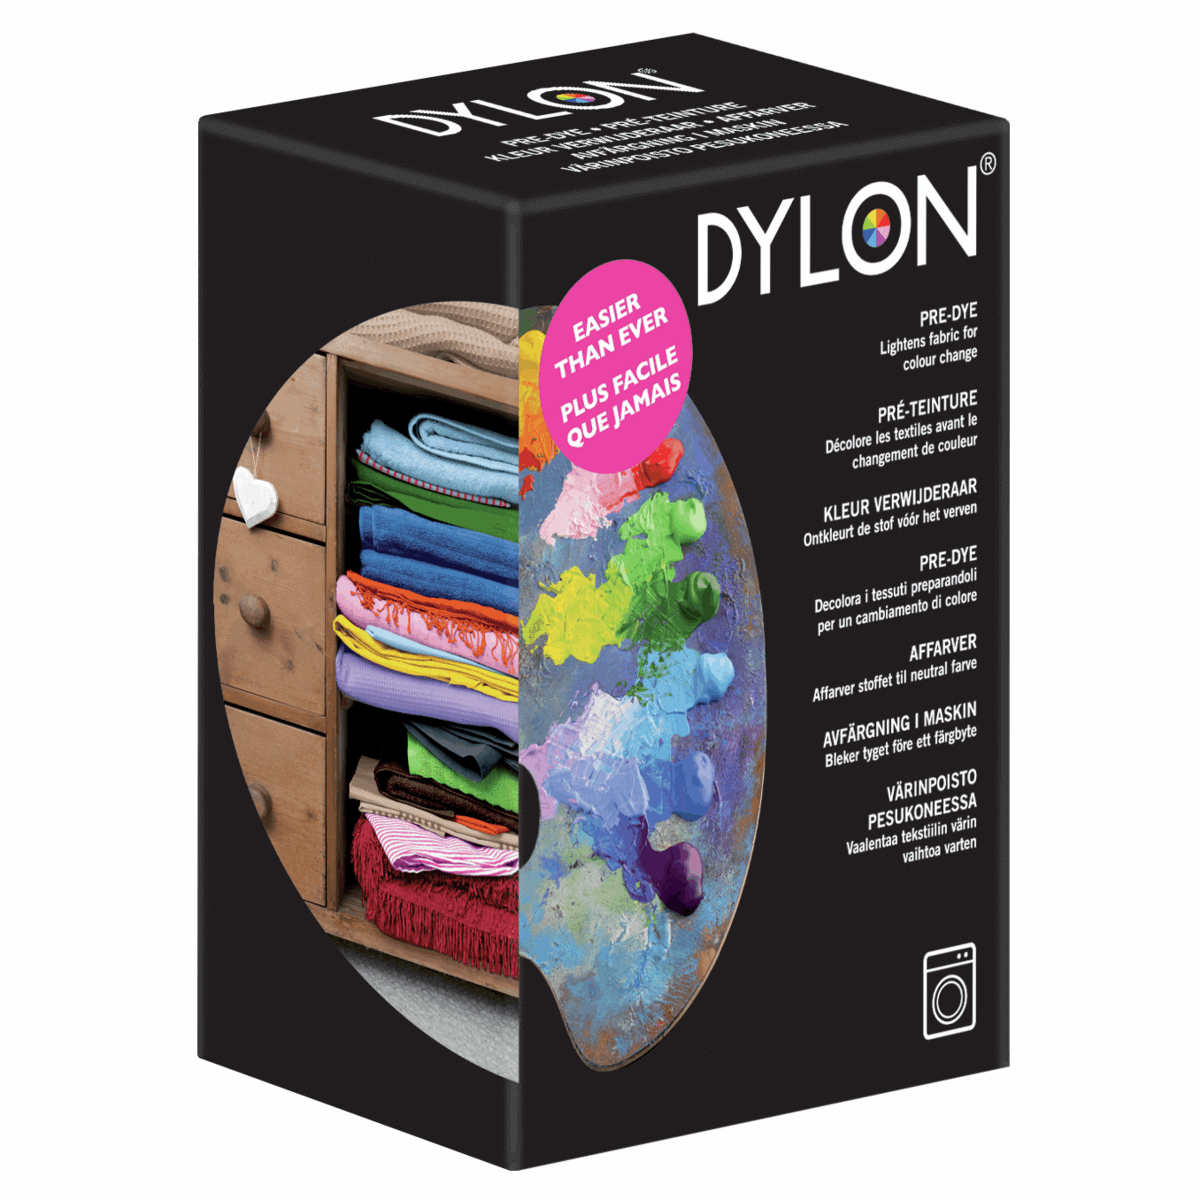 Dylon Fabric Hand Dye Powder 50g Packet For Natural Fibres 19 Colours Pre-Dye